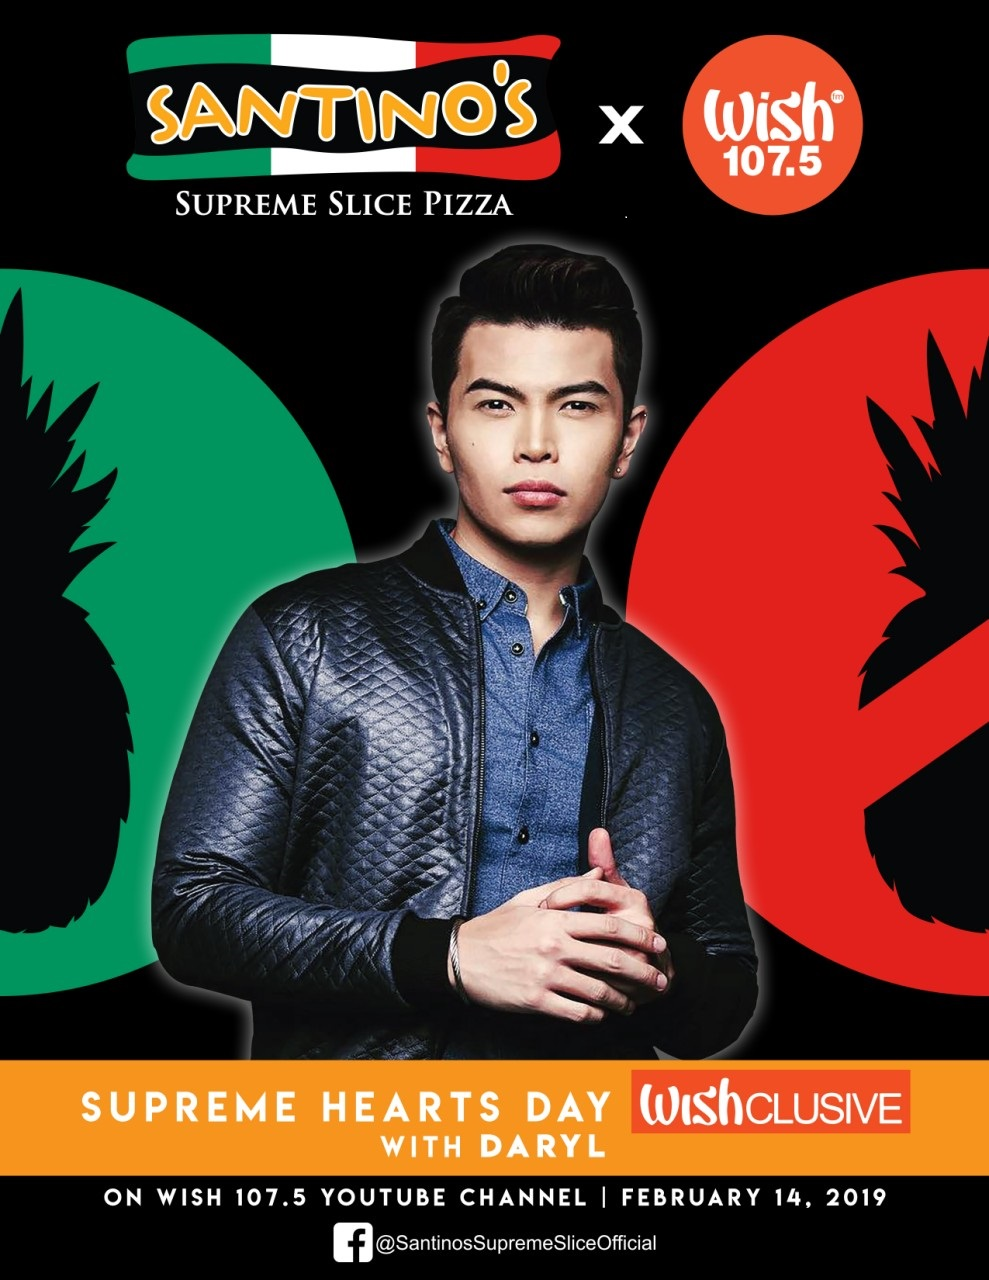 Santino's Supreme Slice supports OPM with WishFM